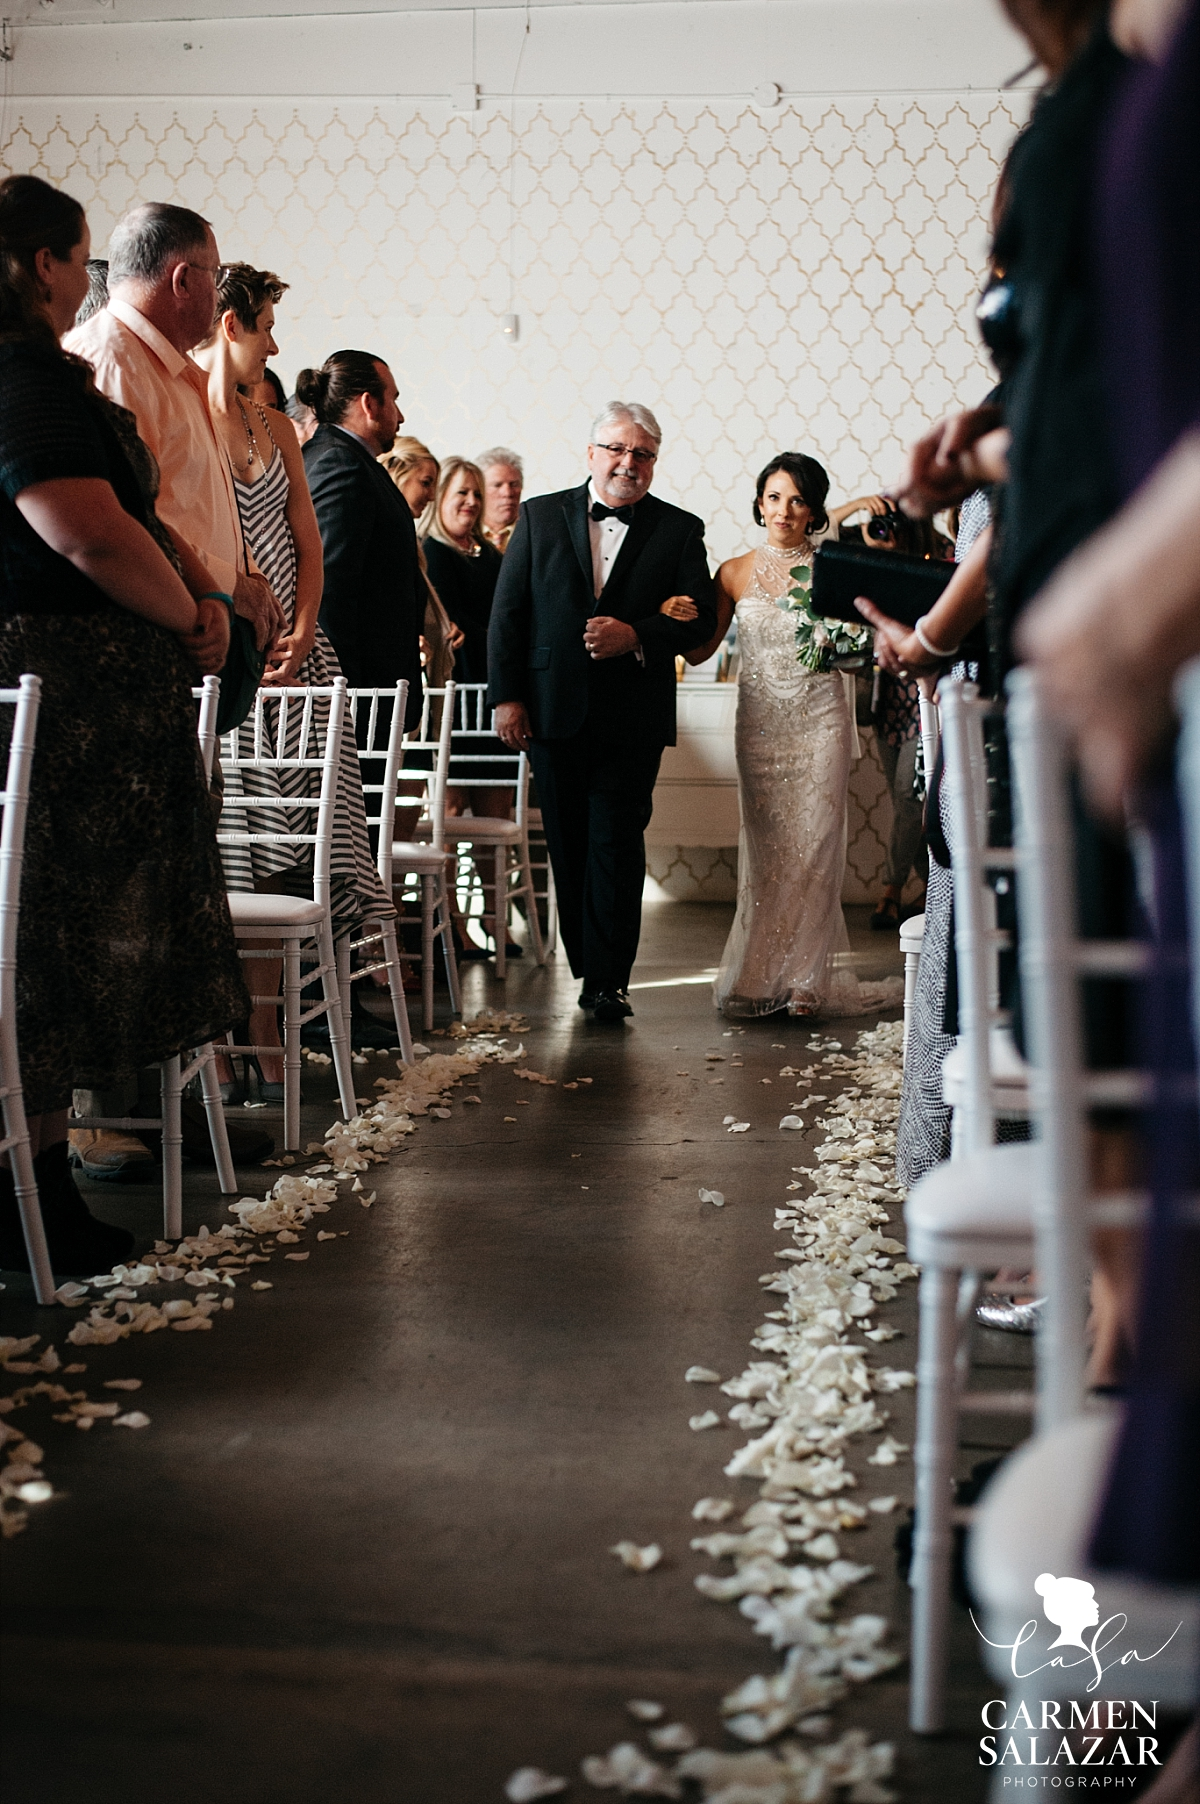 Bride walking down the aisle at The Find/Studio 817 - Carmen Salazar